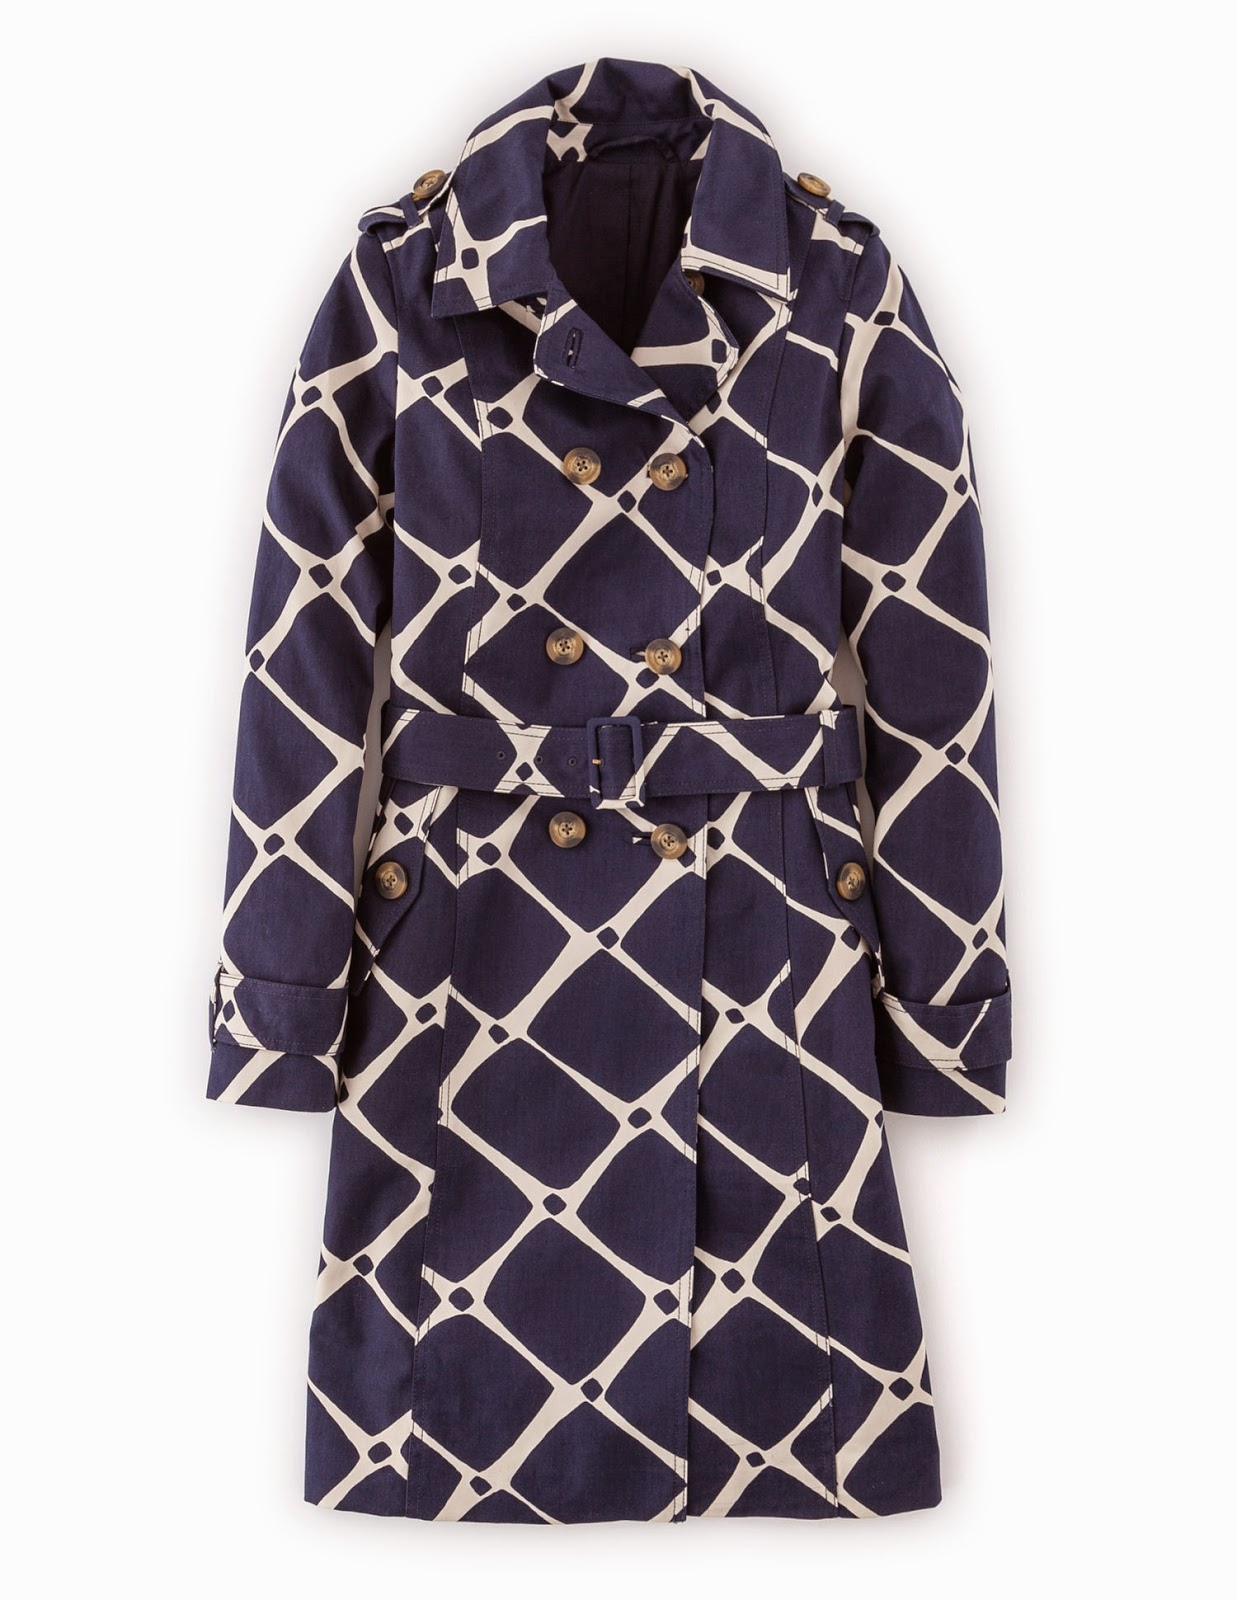 http://www.boden.co.uk/en-GB/Womens-Coats-Jackets/Coats/WE451-NAV/Womens-Navy-Print-Autumn-Trench.html